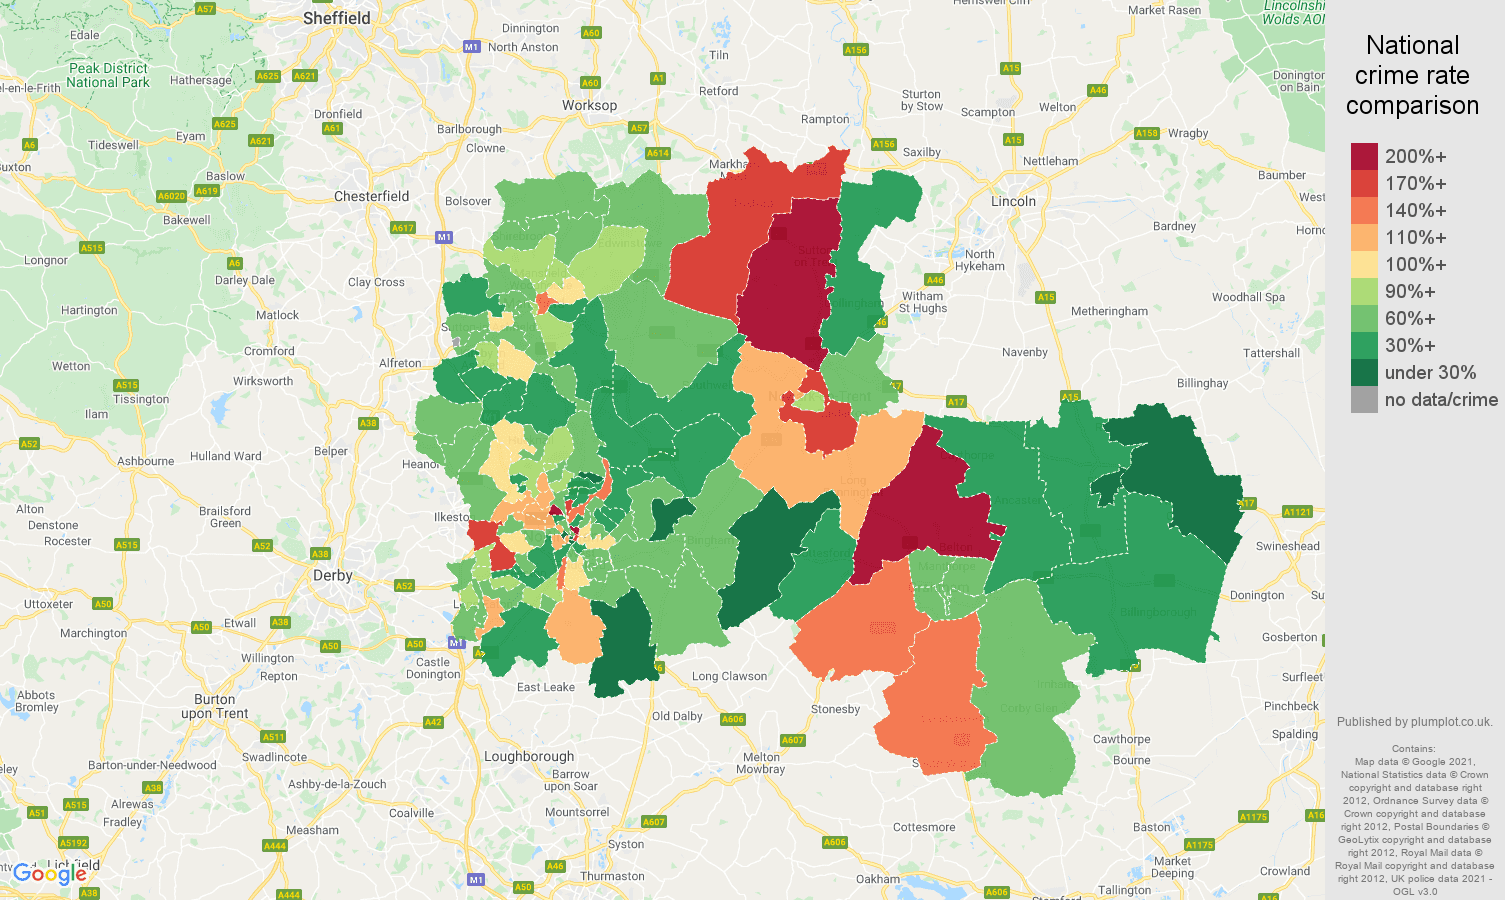 Nottingham vehicle crime rate comparison map